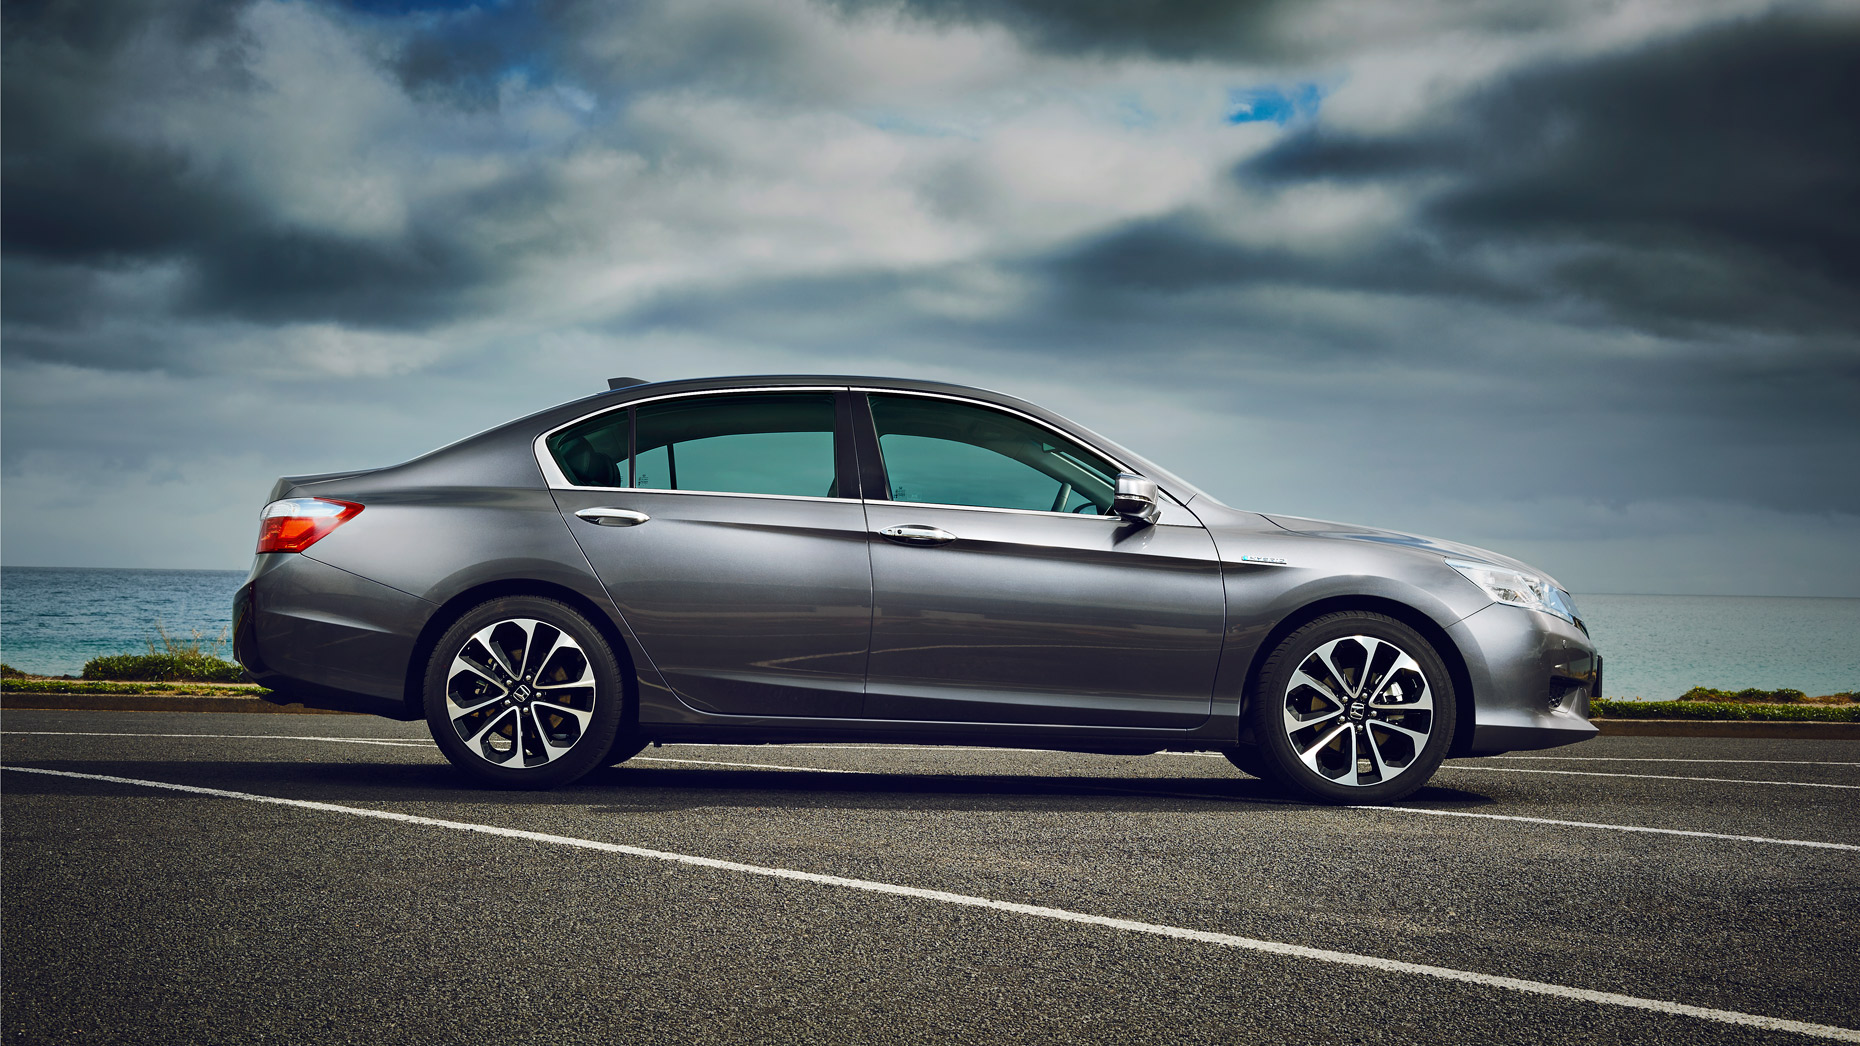 Honda-Accord-Sports-Hybrid_801